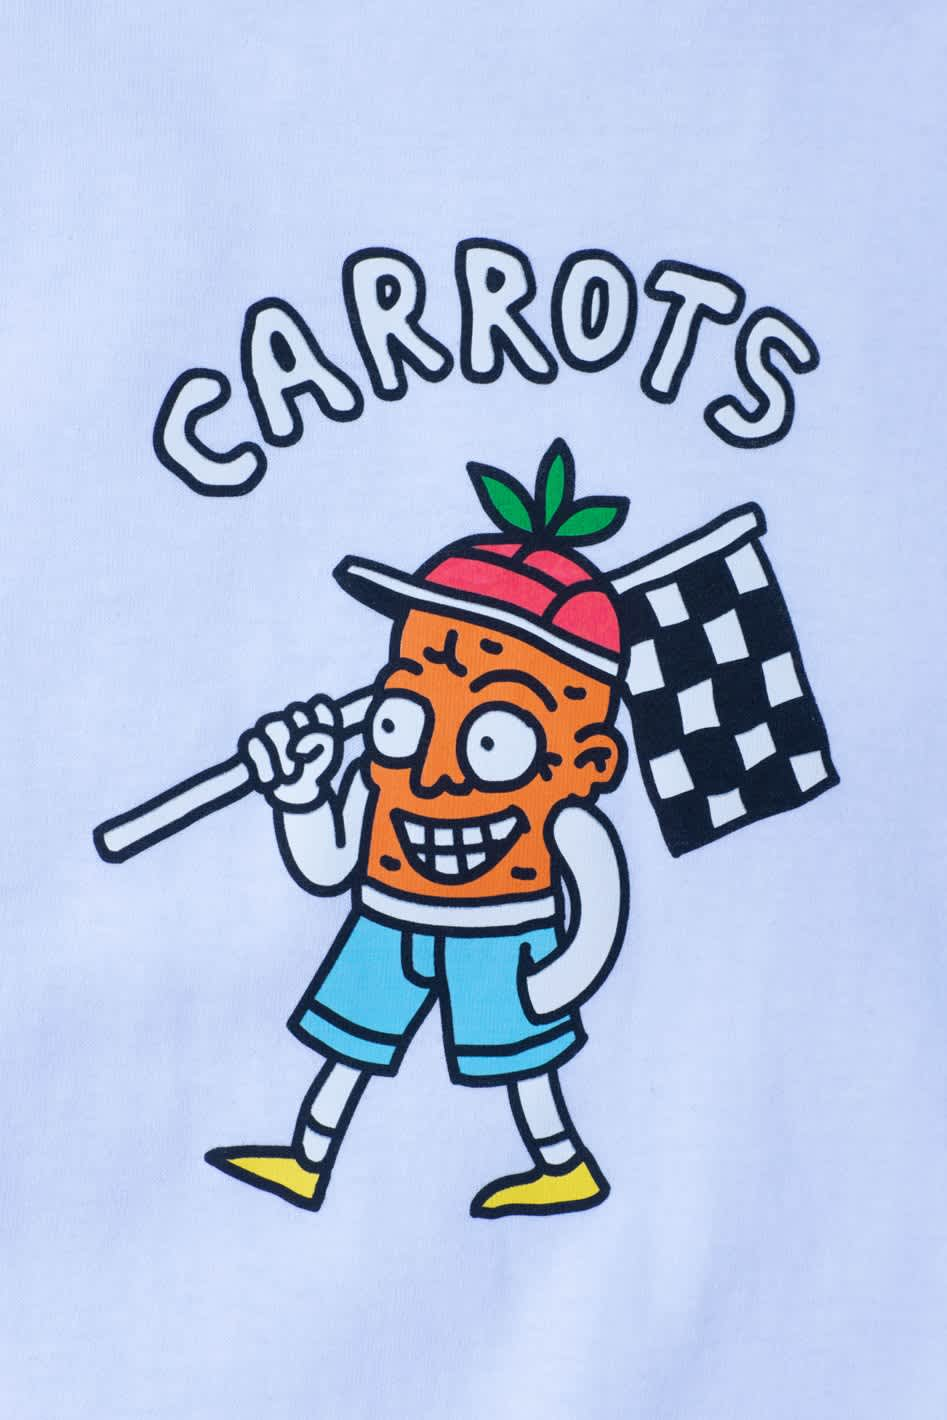 Carrots Finish Line T-Shirt - White | T-Shirt by Carrots by Anwar 2